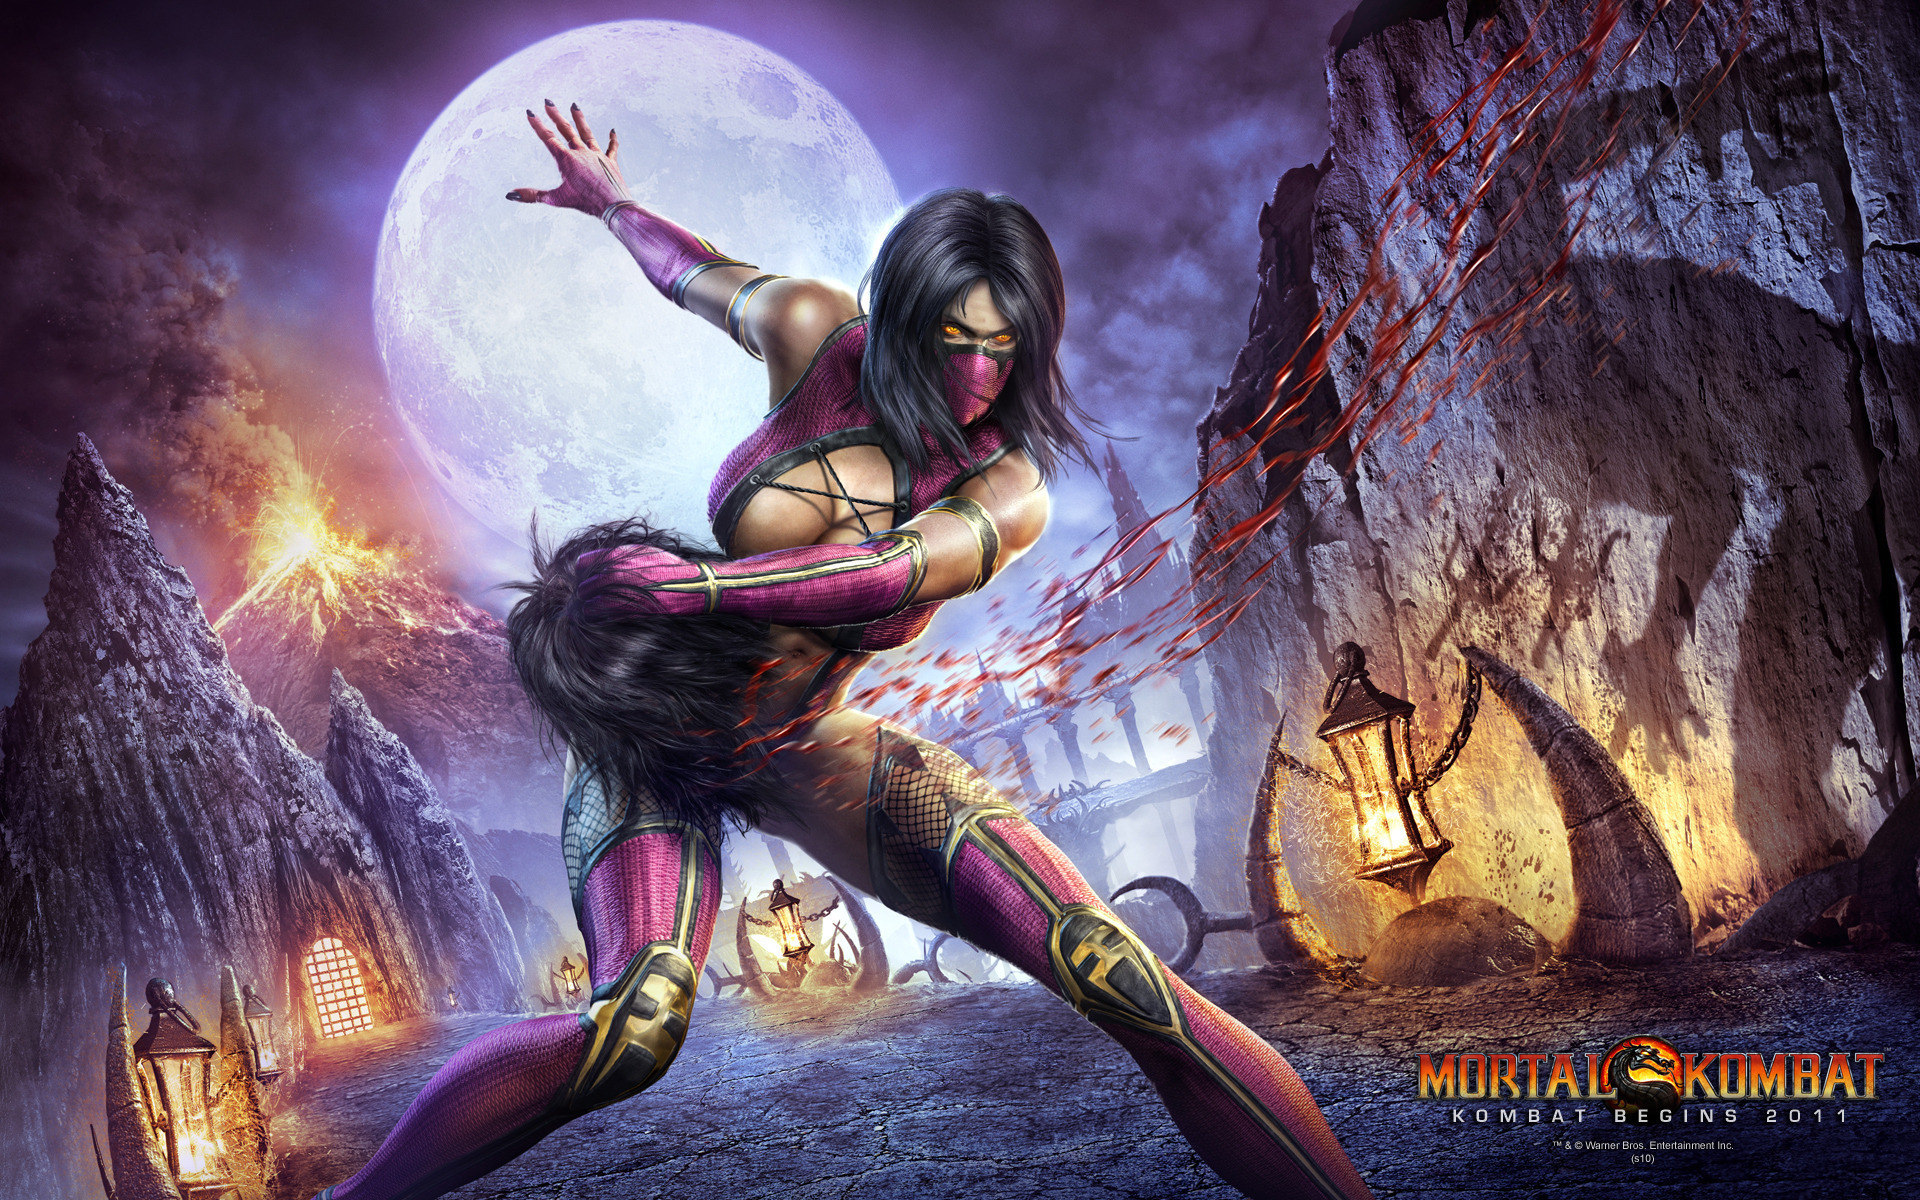 The Ladies Of Mortal Kombat Images Wallpaper Hd Wallpaper And